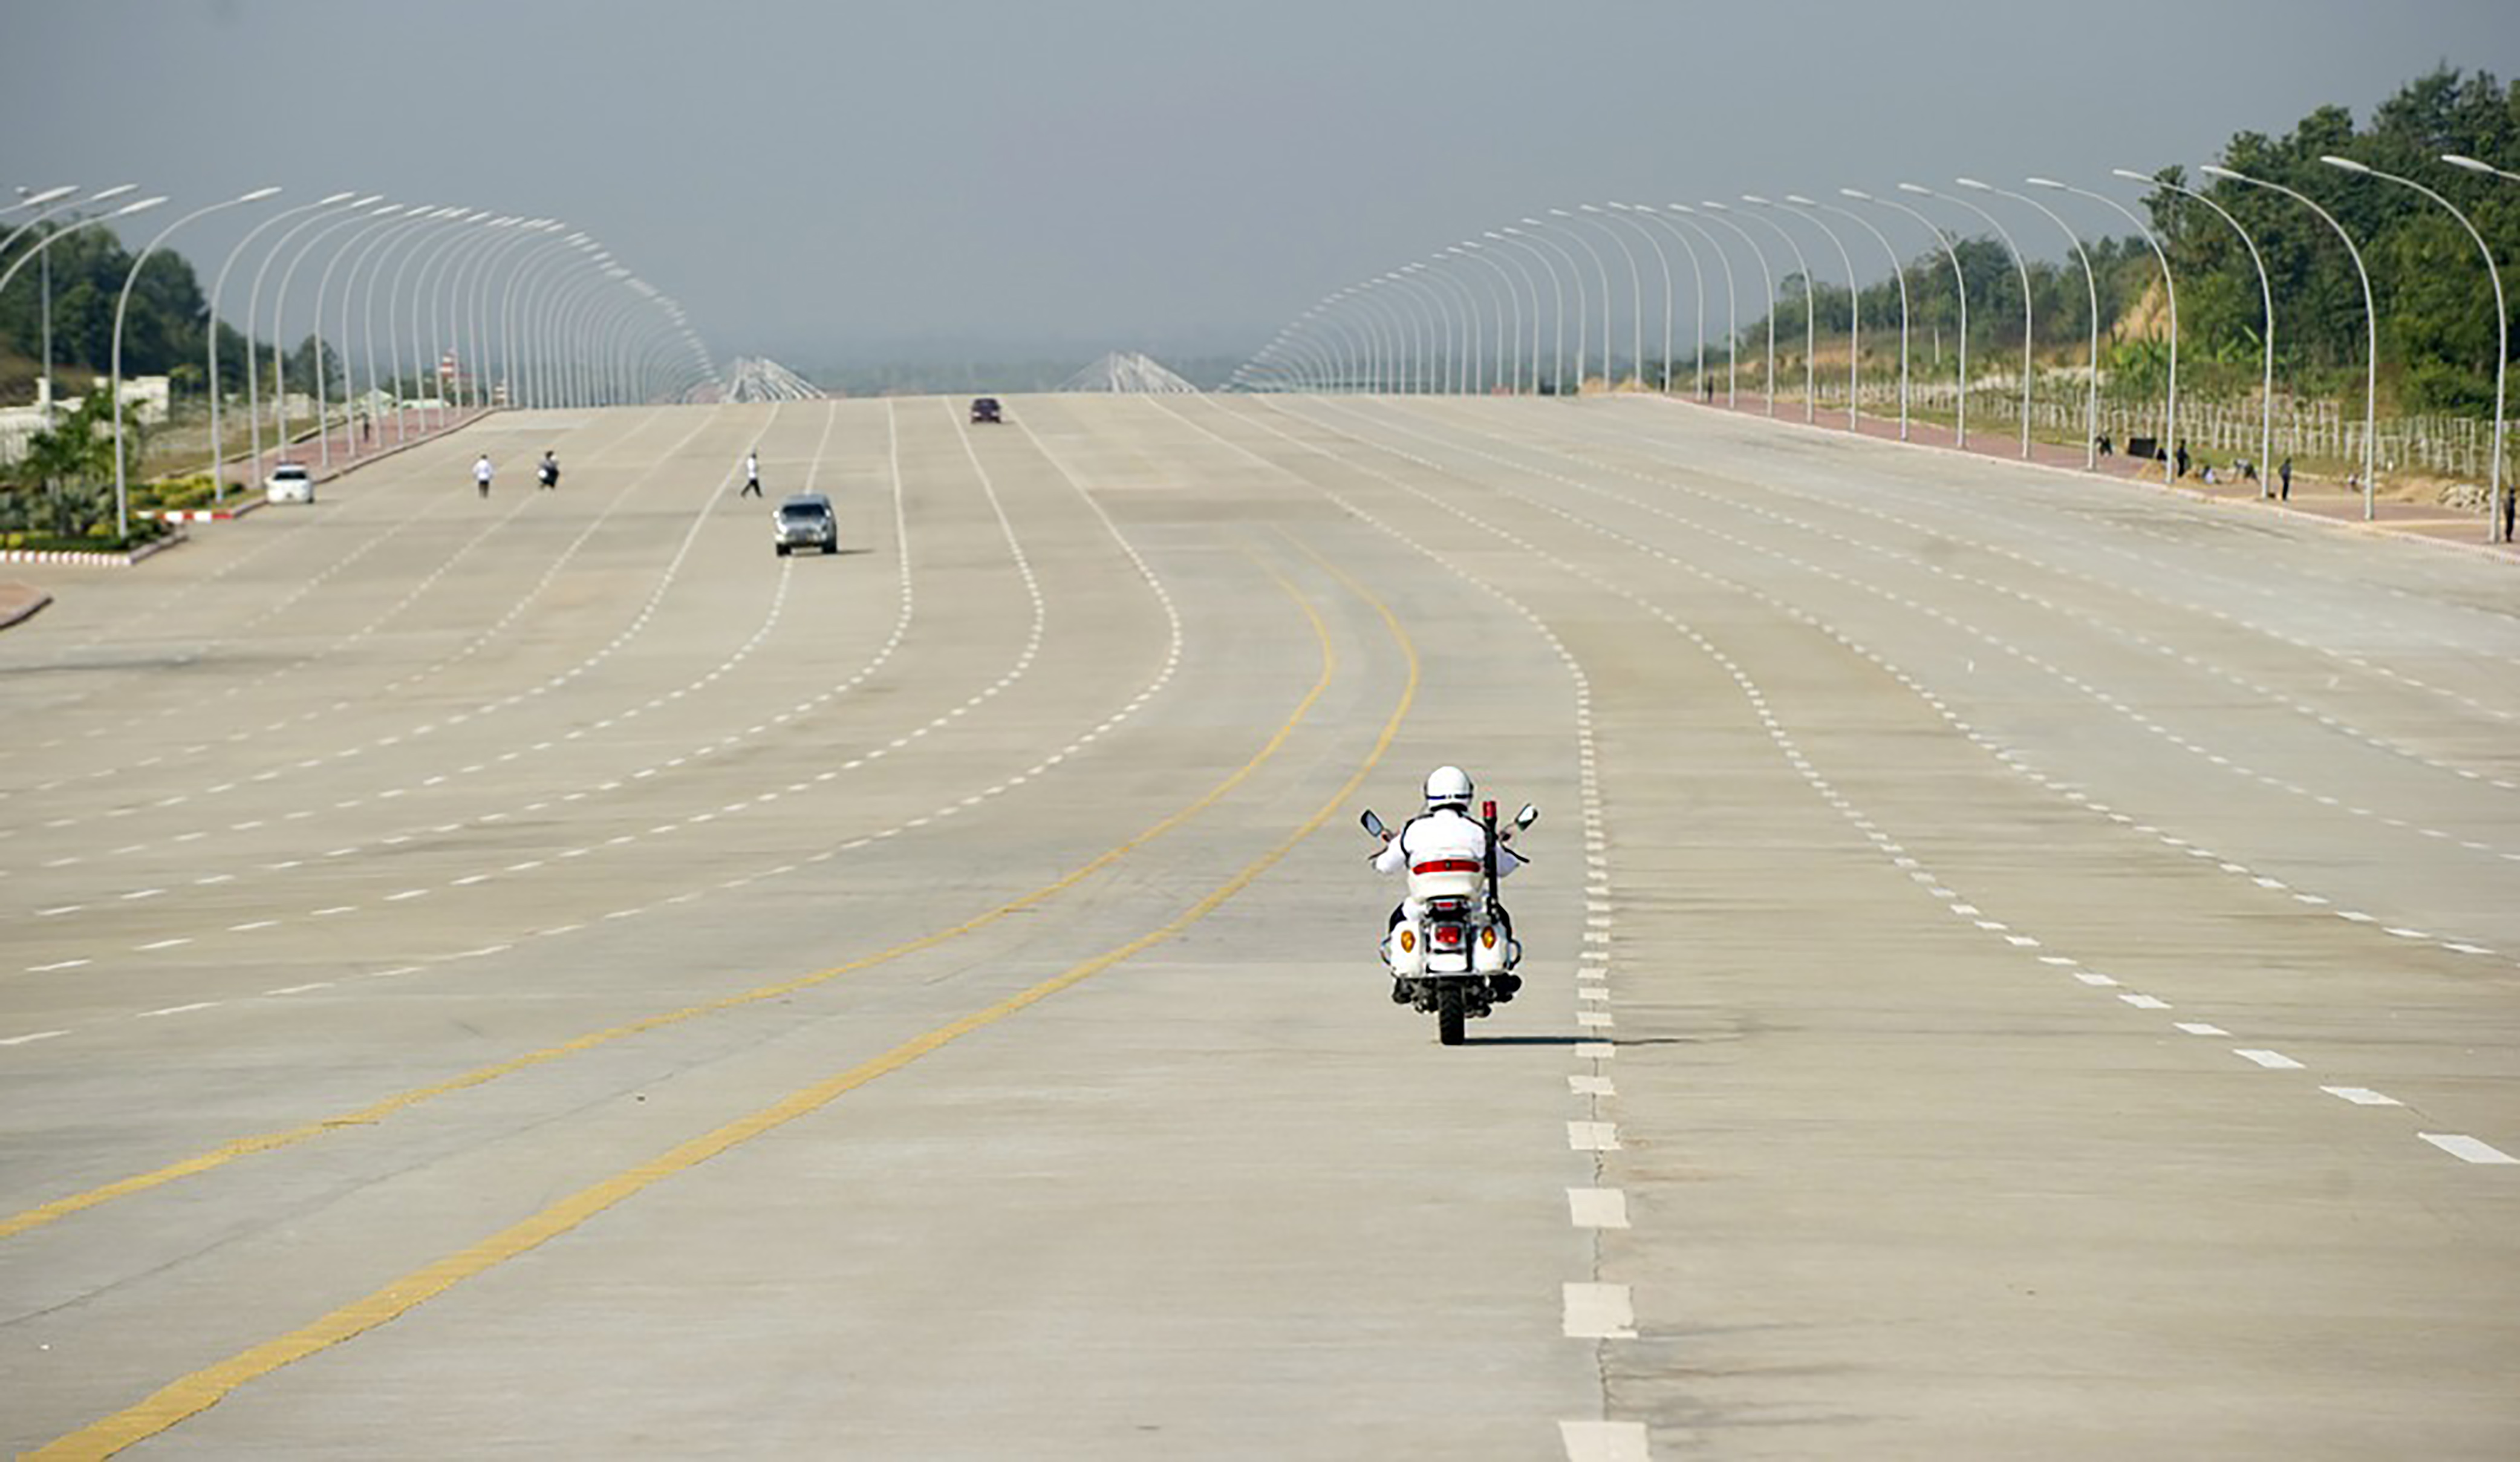 Superform. Twenty-lane highway in Myanmar's administrative capital, a city of less than a million people.